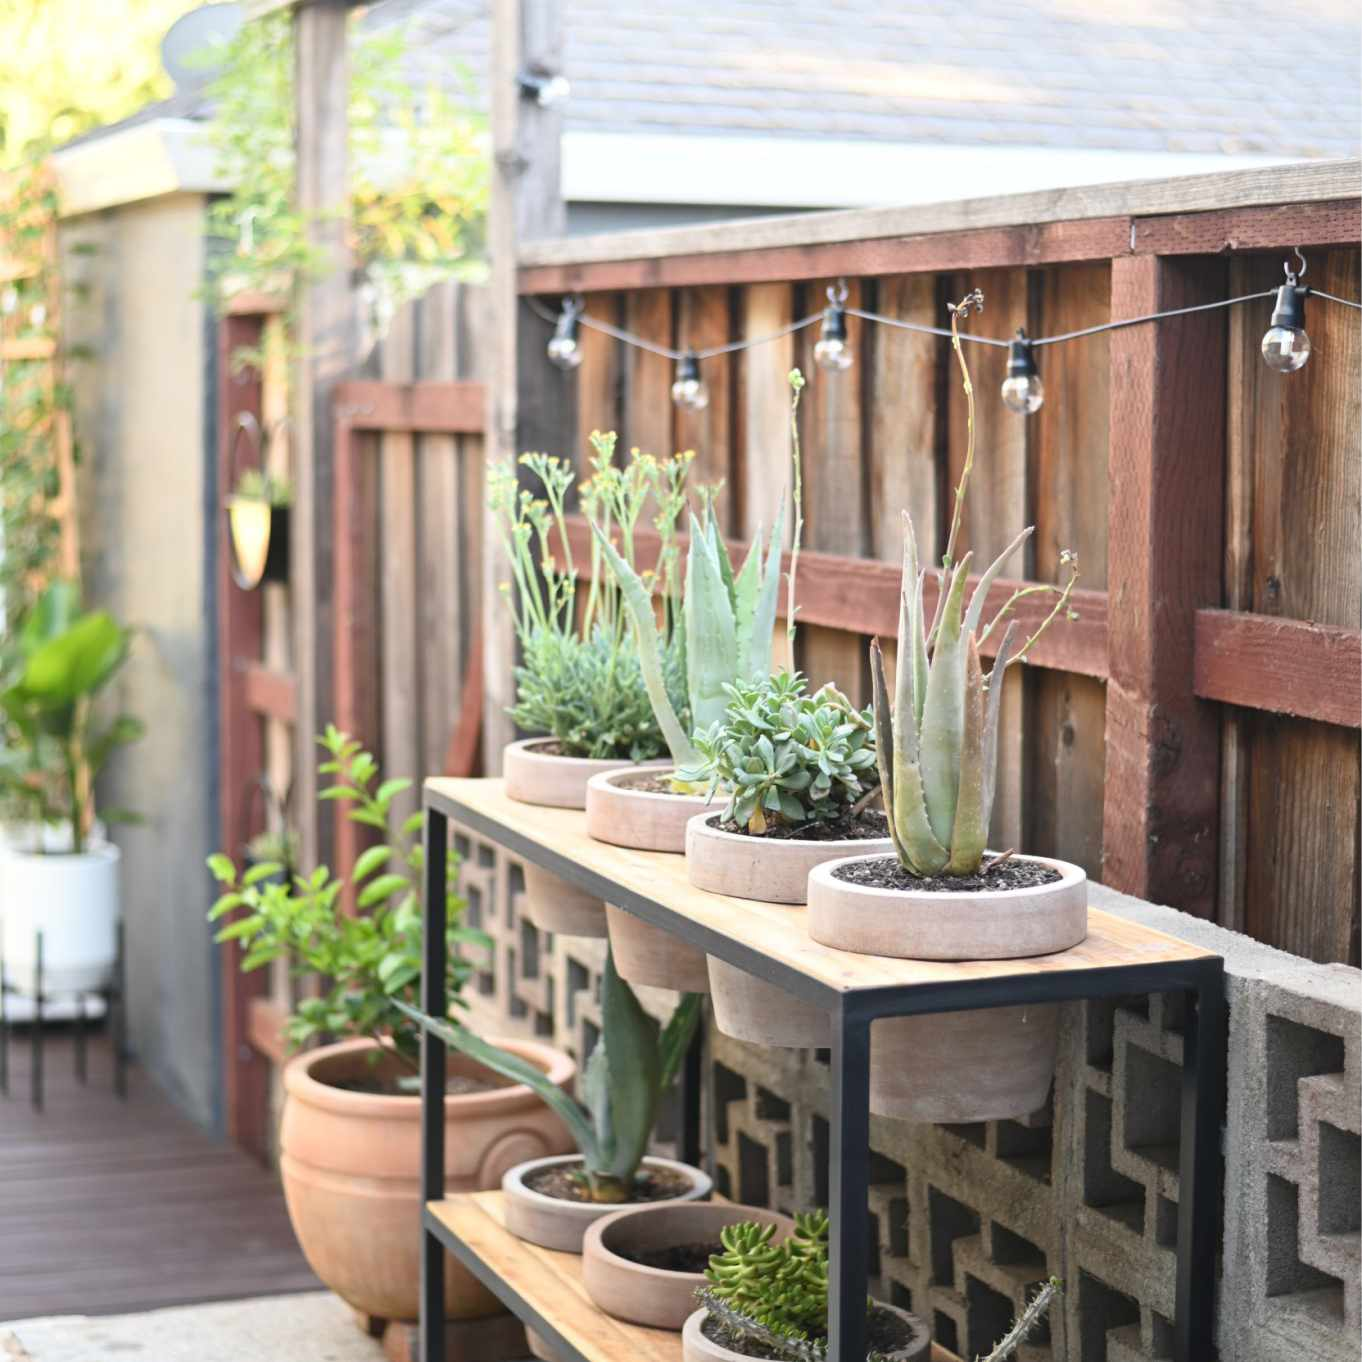 Small planters lined up in a wooden bed.